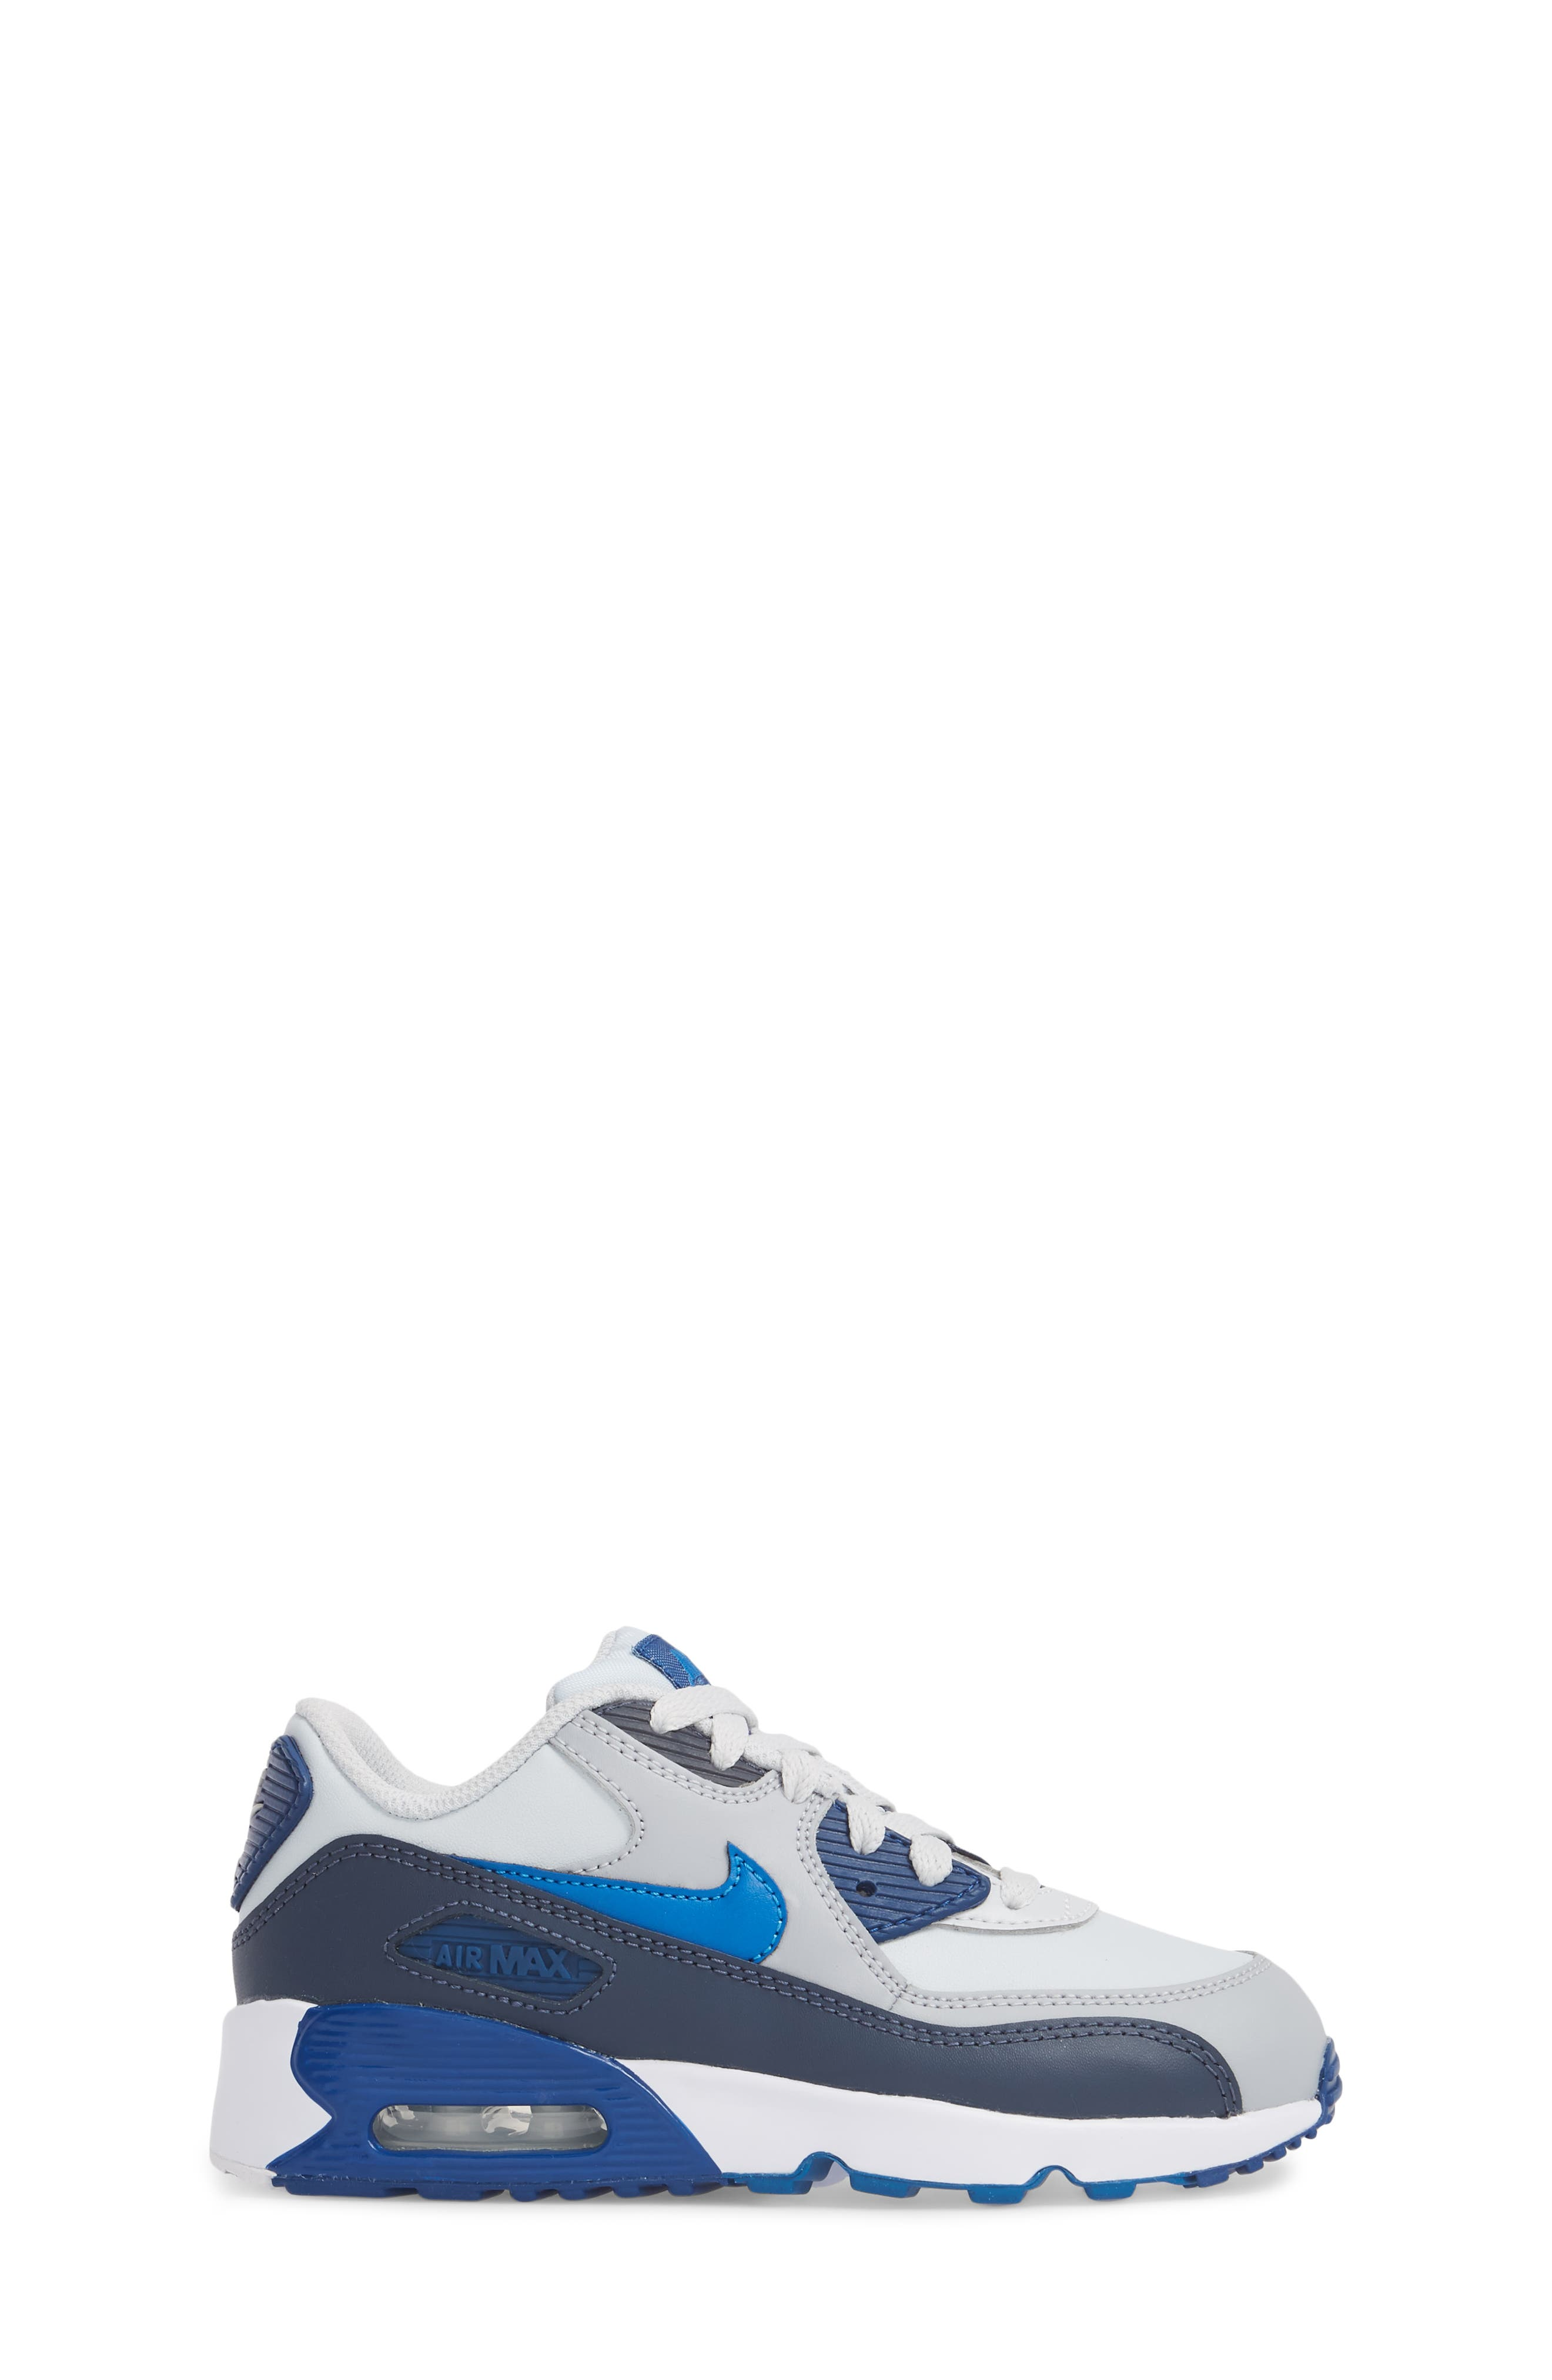 Air Max 90 Sneaker,                             Alternate thumbnail 3, color,                             Blue Nebula/ Wolf Grey